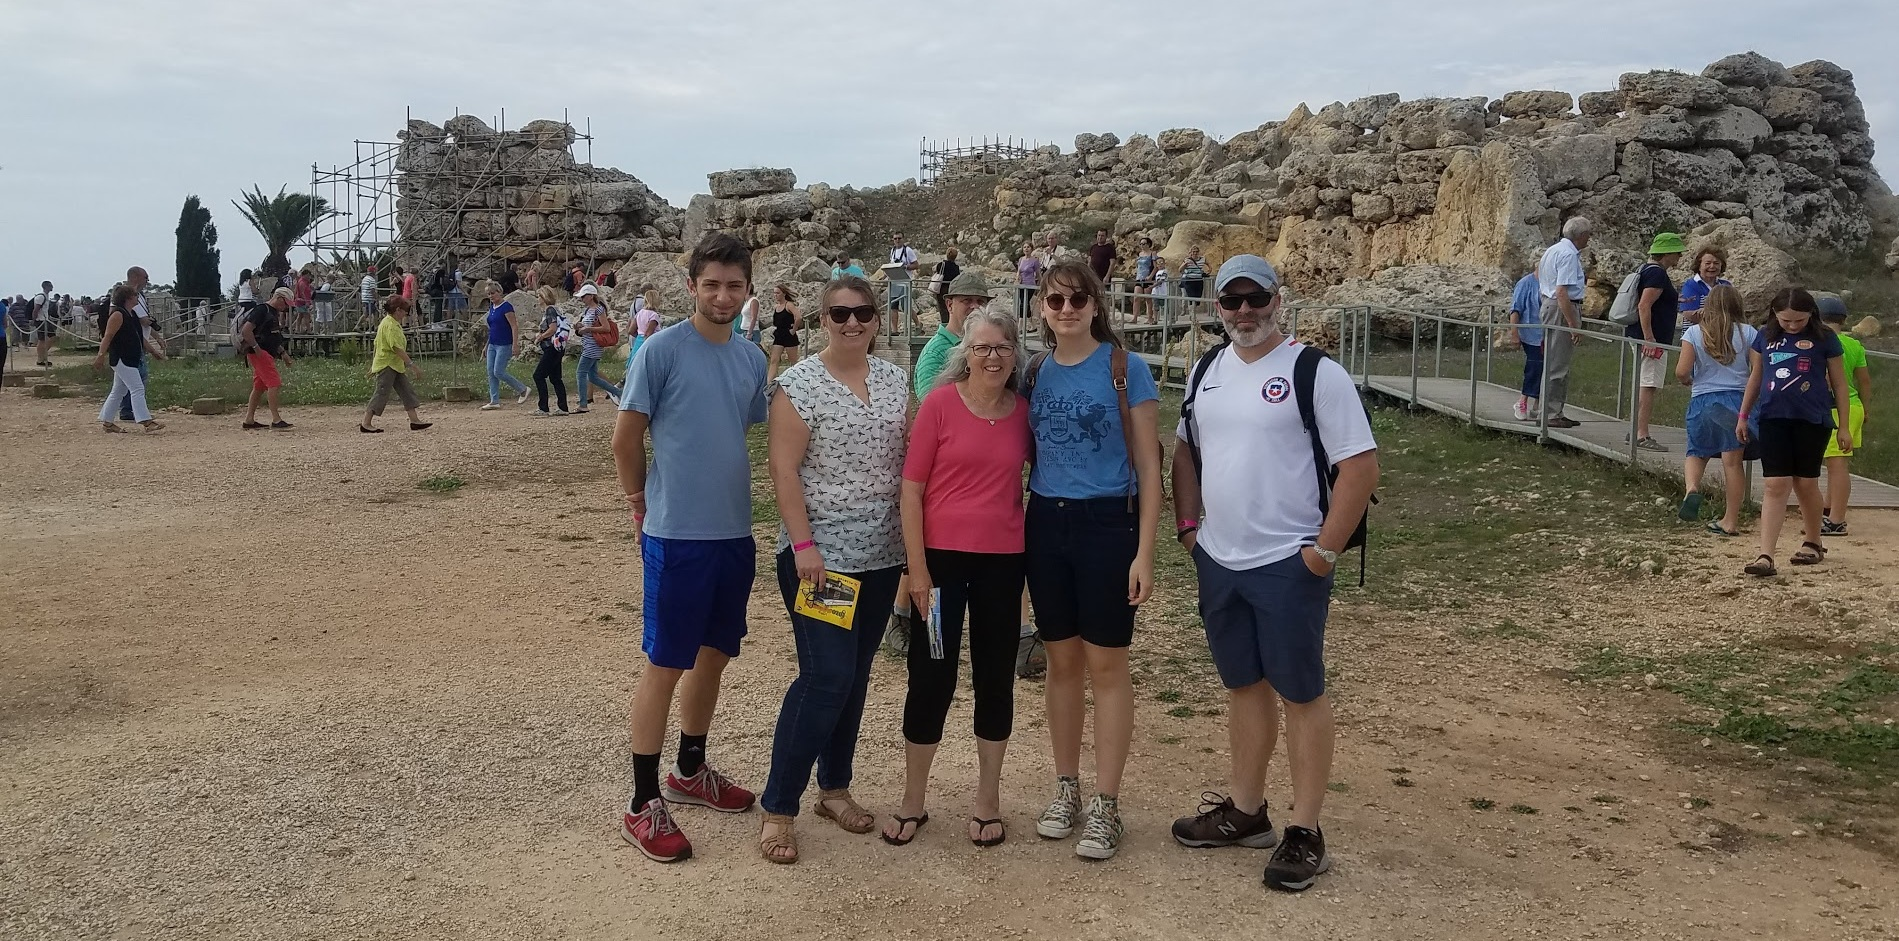 Behind family are the Megalithic Temples of Malta. They are UNESCO World Heritage Sites because they are the oldest free-standing structures in the world built 5,600 years ago. These polytheistic people may have been the ancestors of those Paul encountered. Picture LR: Mishael, Christina, Nancy, Noelle and Caleb Suko.